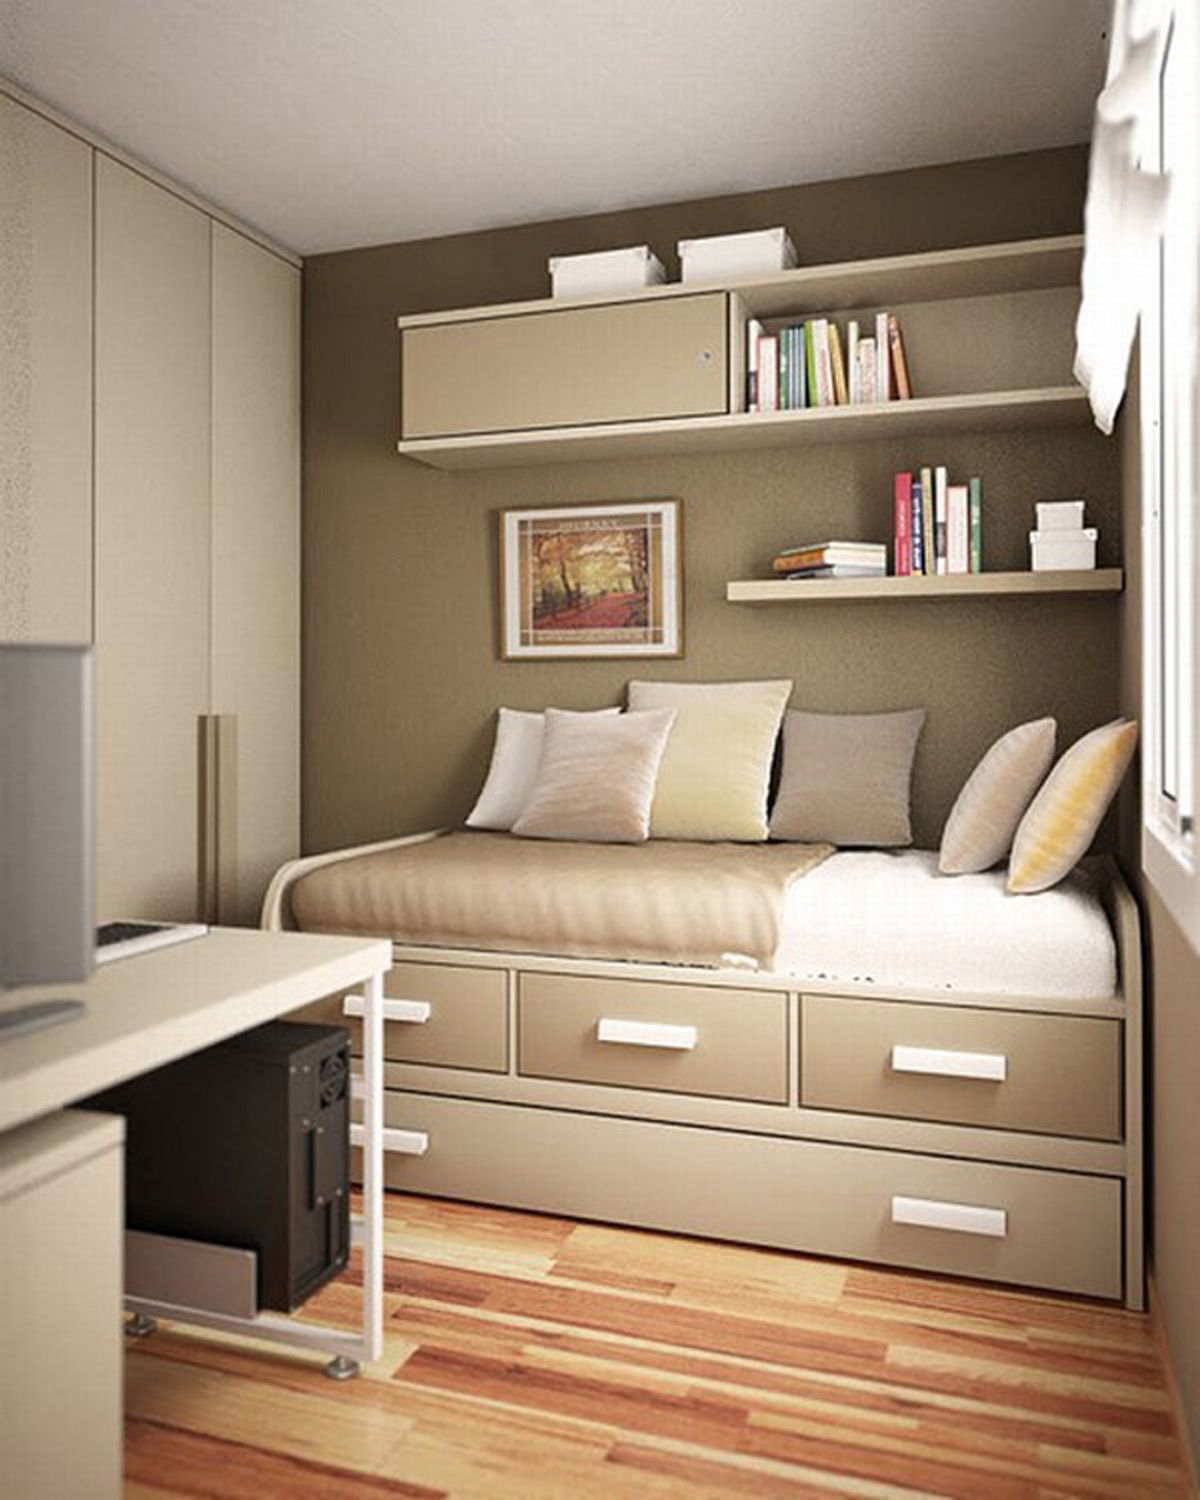 contemporary small bedroom ideas - Decorating Ideas For Small Bedrooms